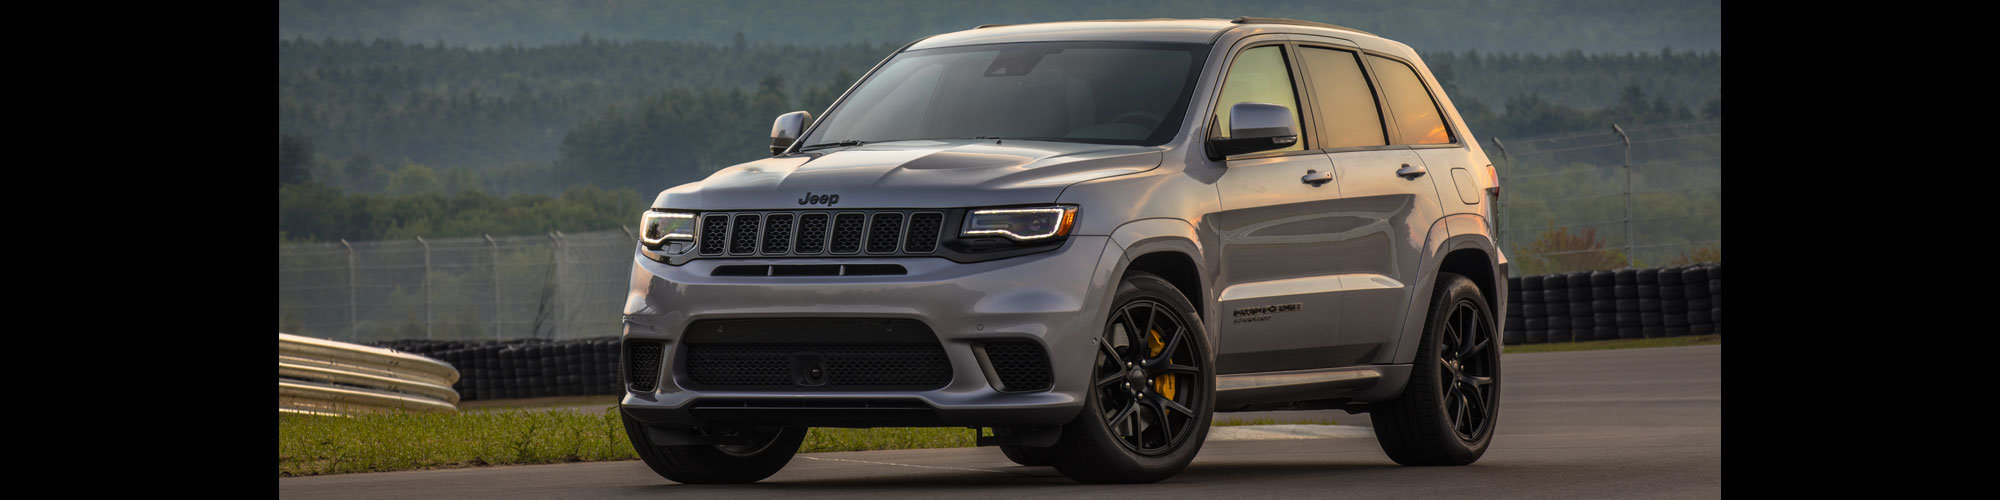 2018 Jeep Grand Cherokee Suv Ashland Ford Chrysler In Wi Trailer Hitch Wiring No Image